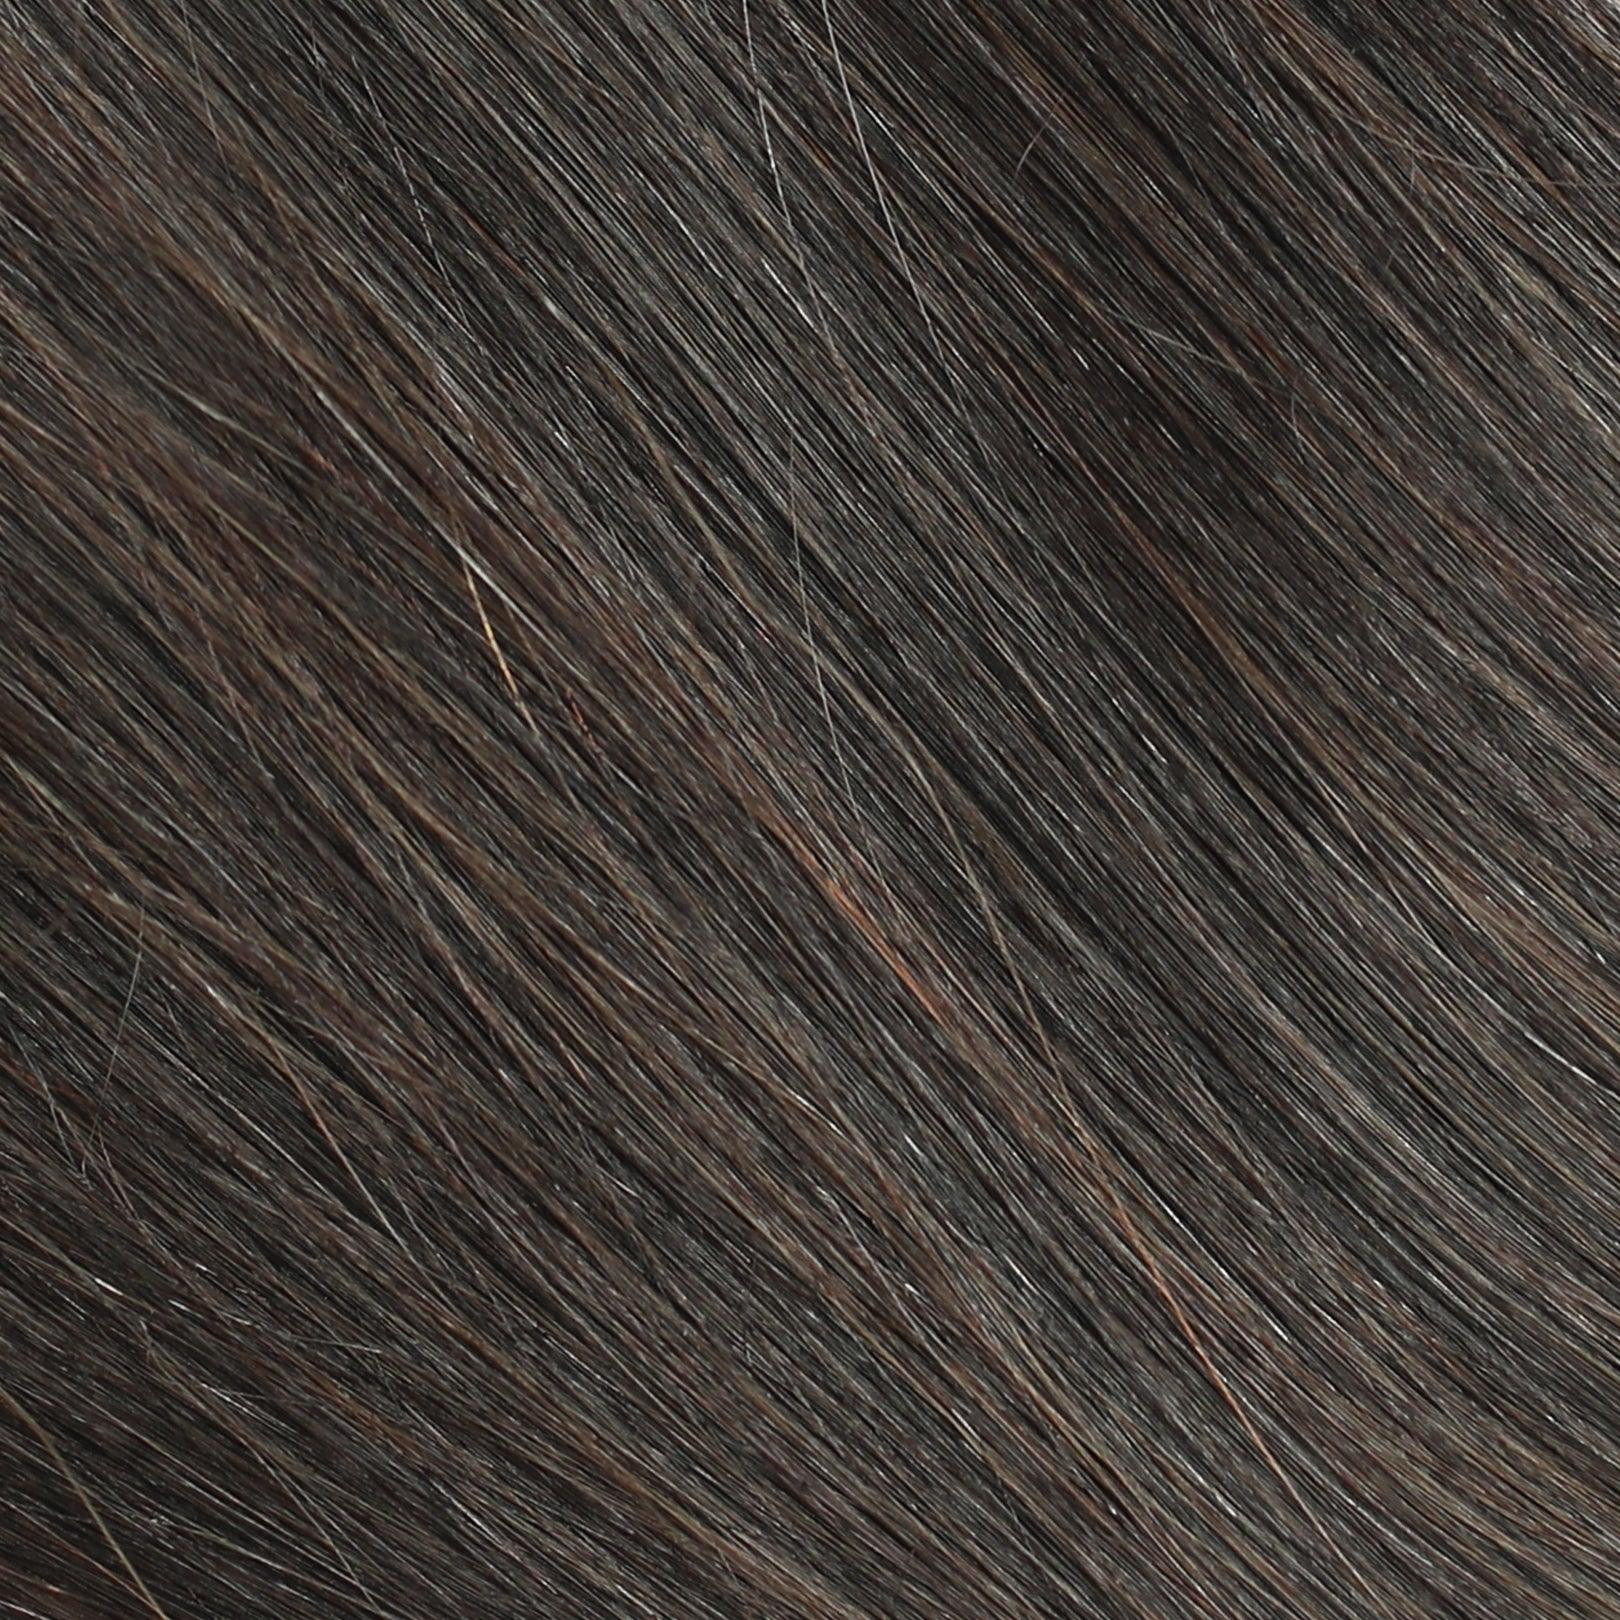 Hair Texture Swatches (20 colors) - Photography and Web Design - Los Angeles, US based Shopify Experts Revo Designs